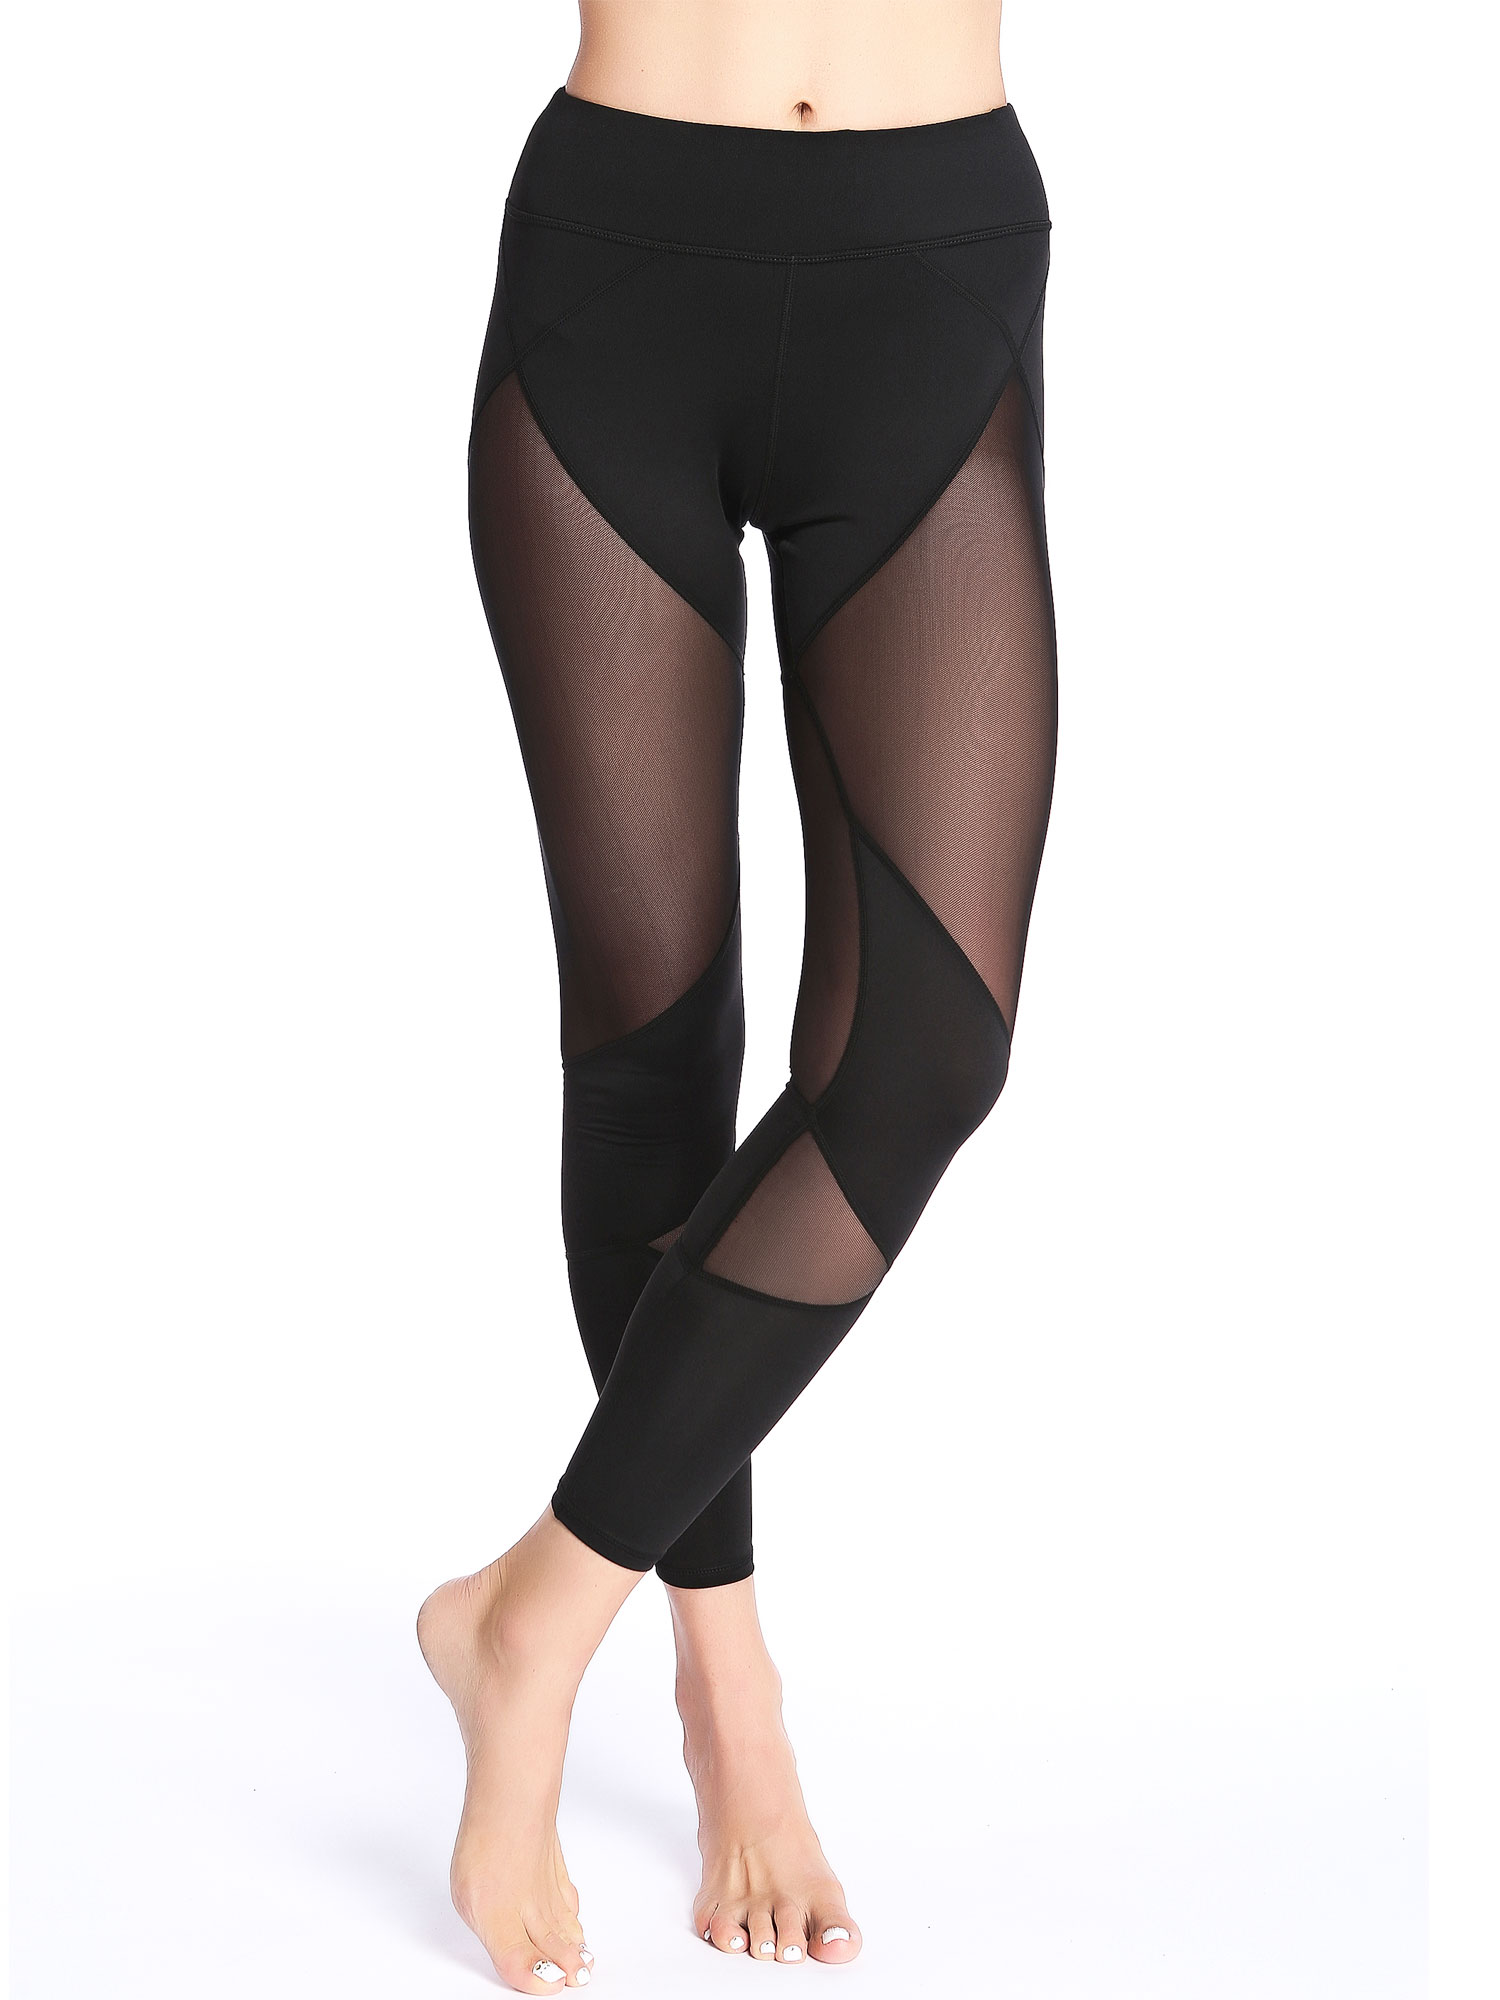 OwnShoe Yoga Pants Sexy and Charming